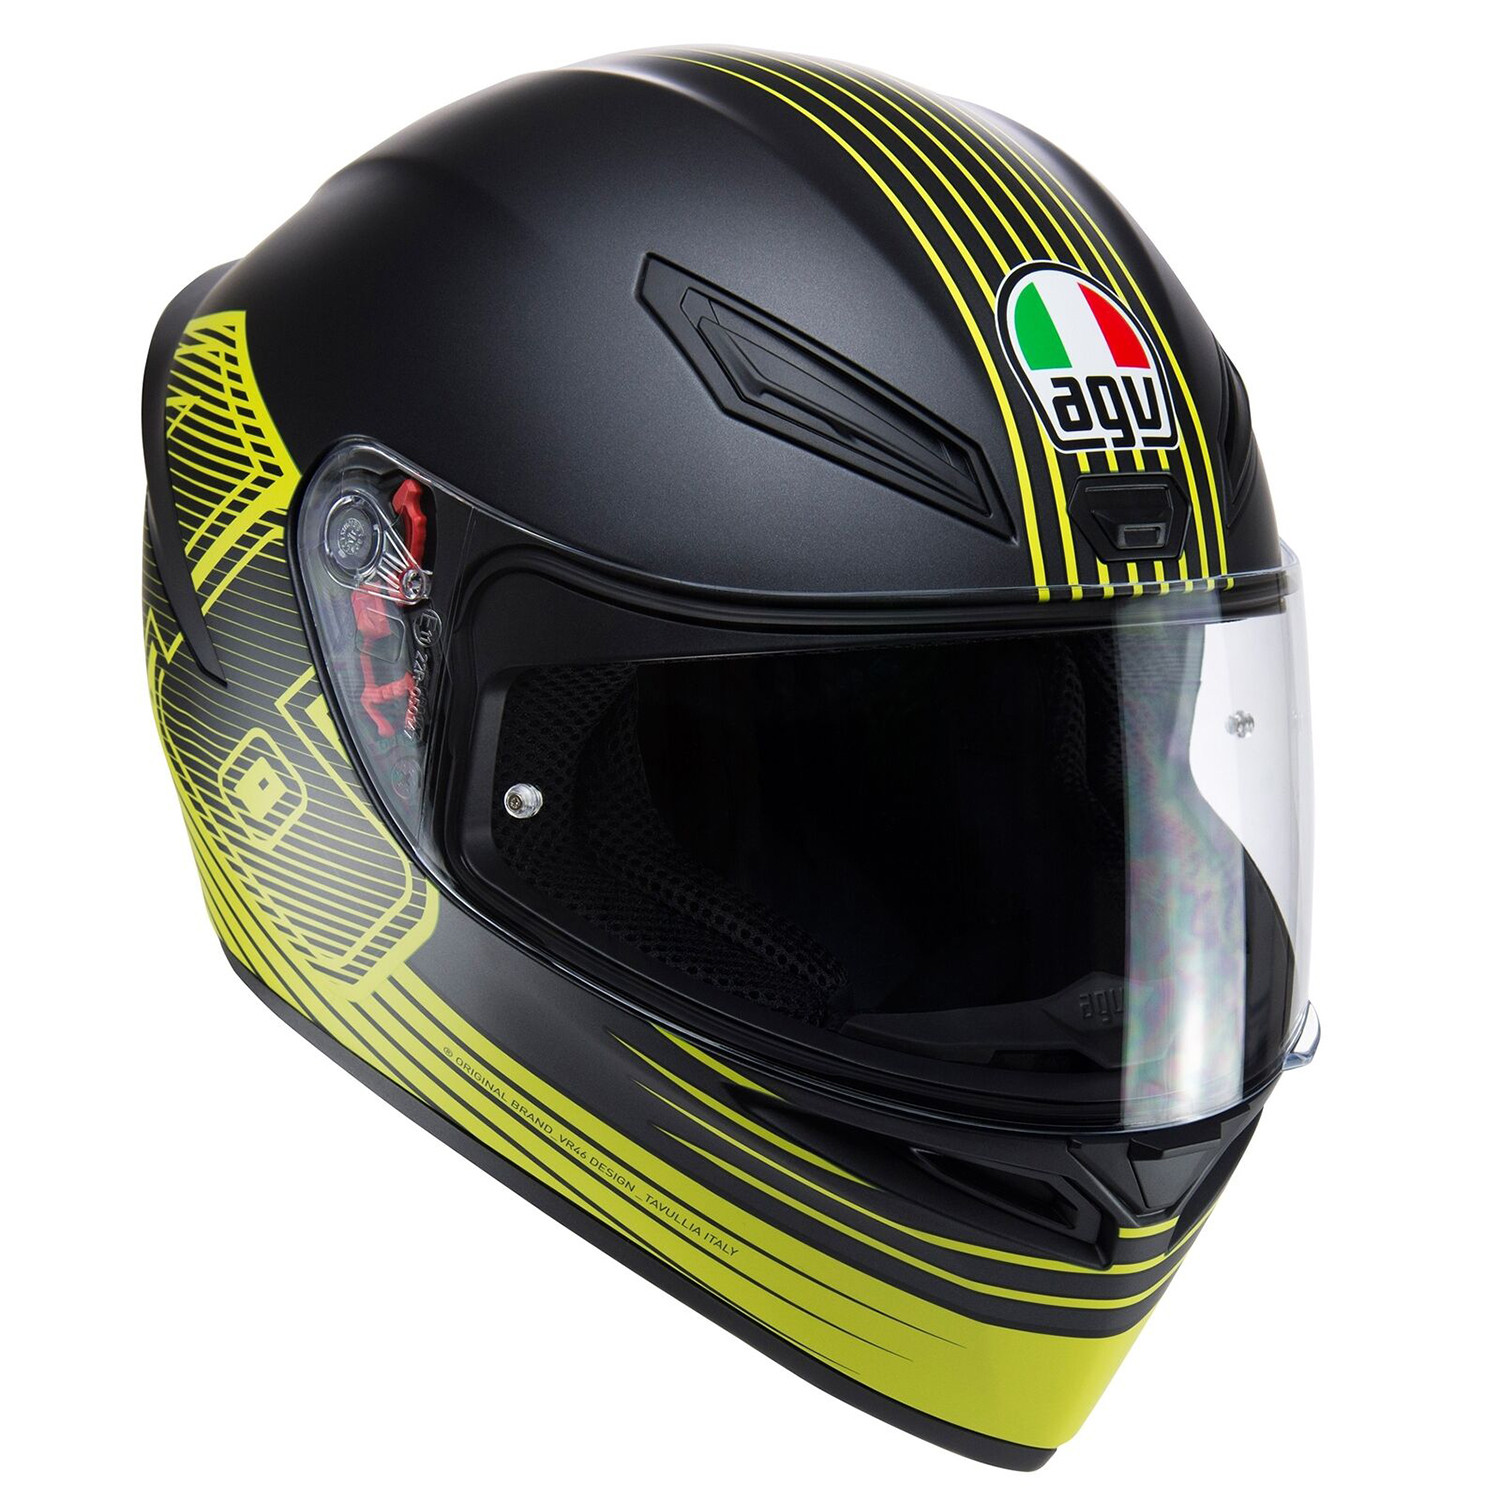 Casco Integral AGV K1 Top Edge Valentino Rossi